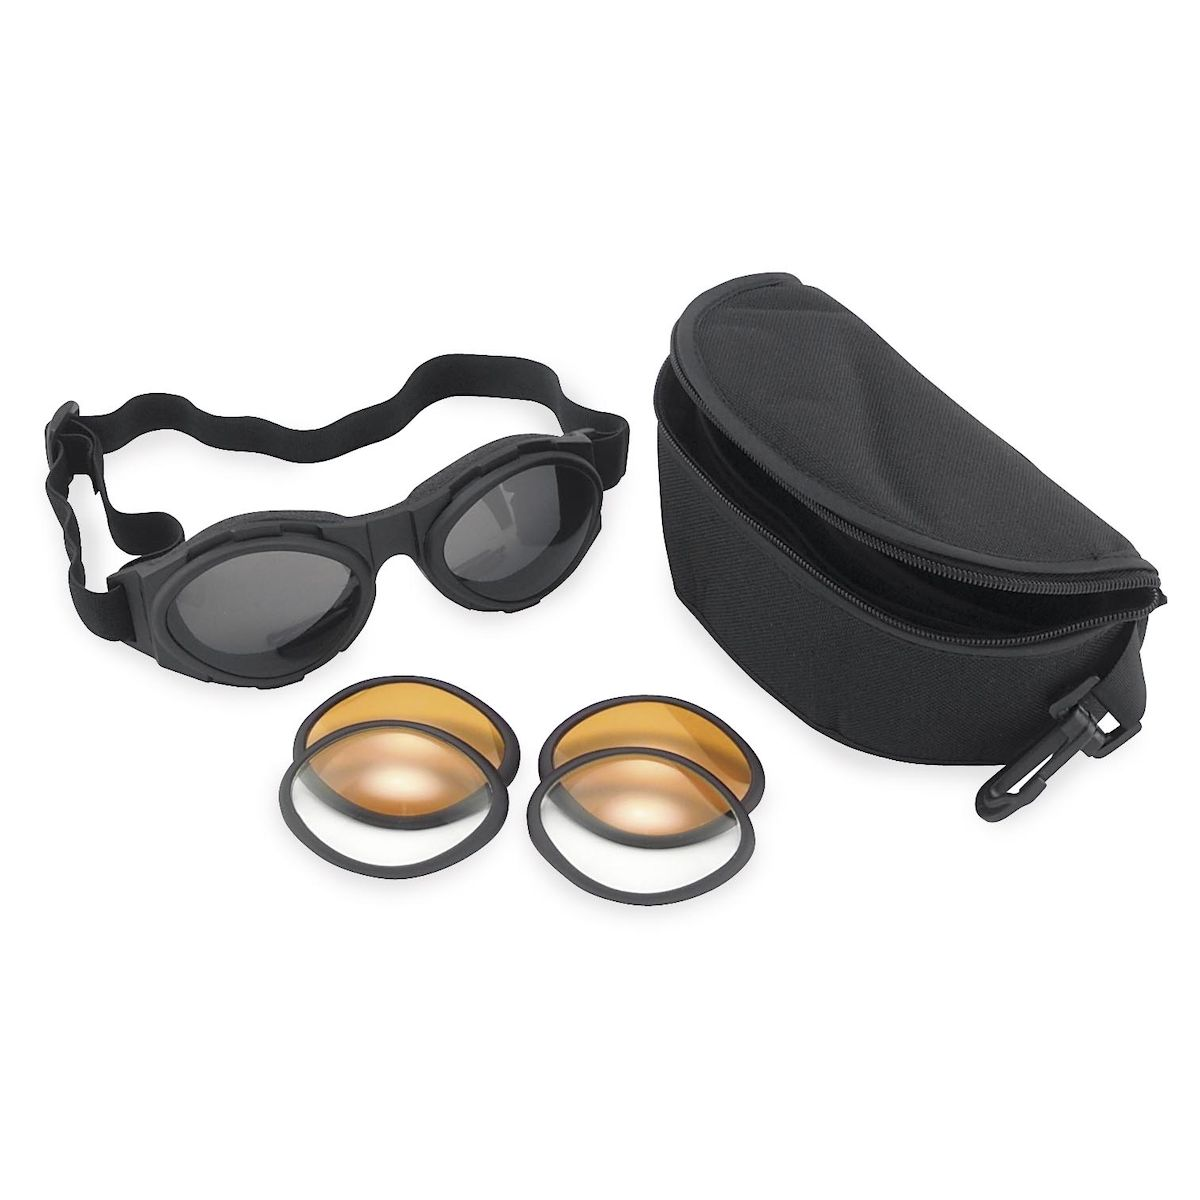 2 Motorcycle Sunglasses Women/'s Police EMT Small Padded Glasses Smoked Red Lens